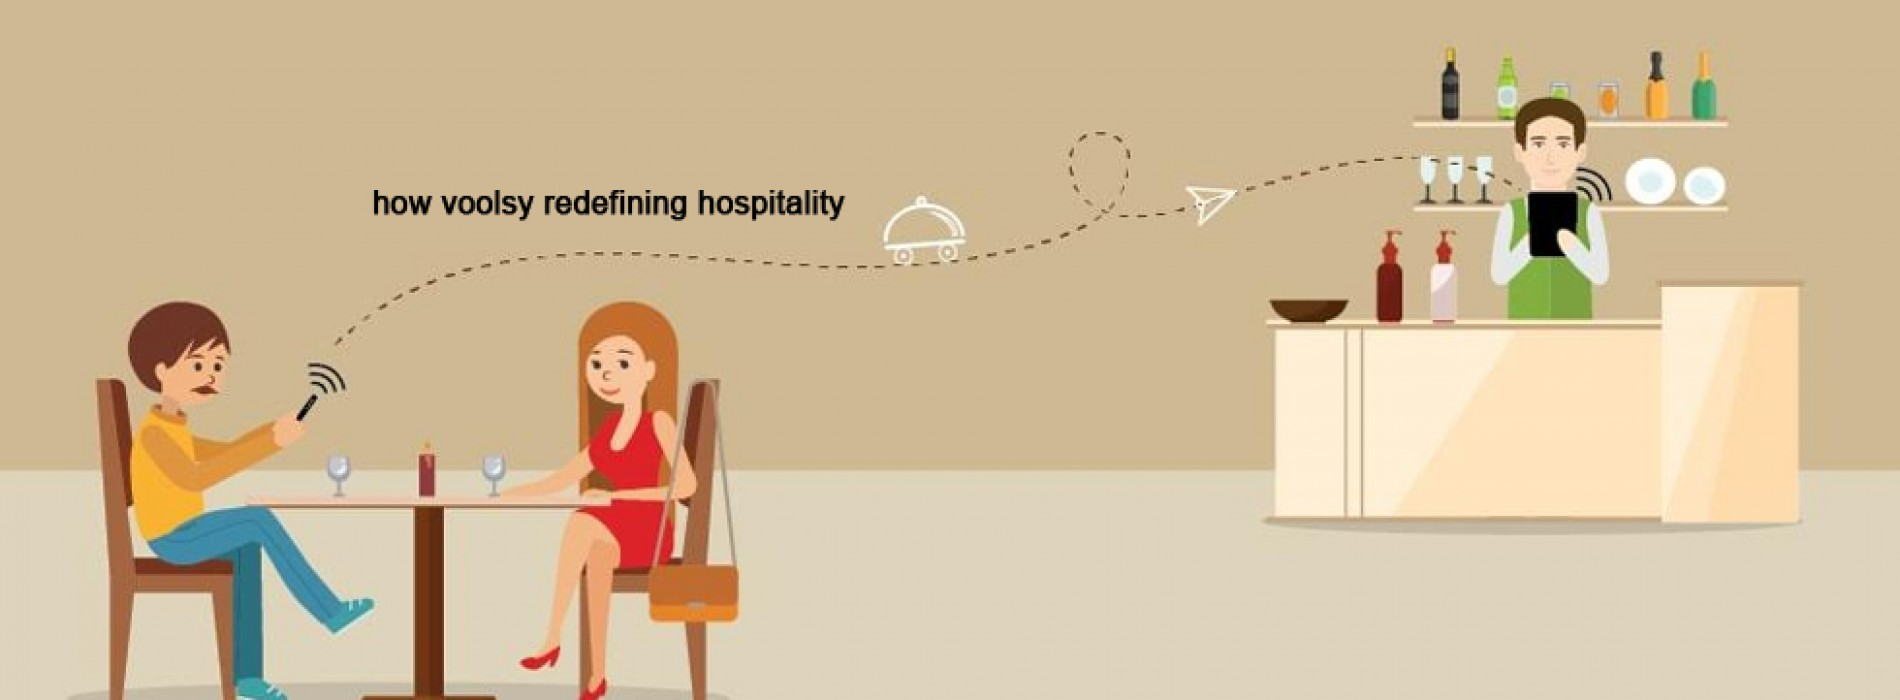 This start-up is elevating the hospitality sector by redefining the way people dine